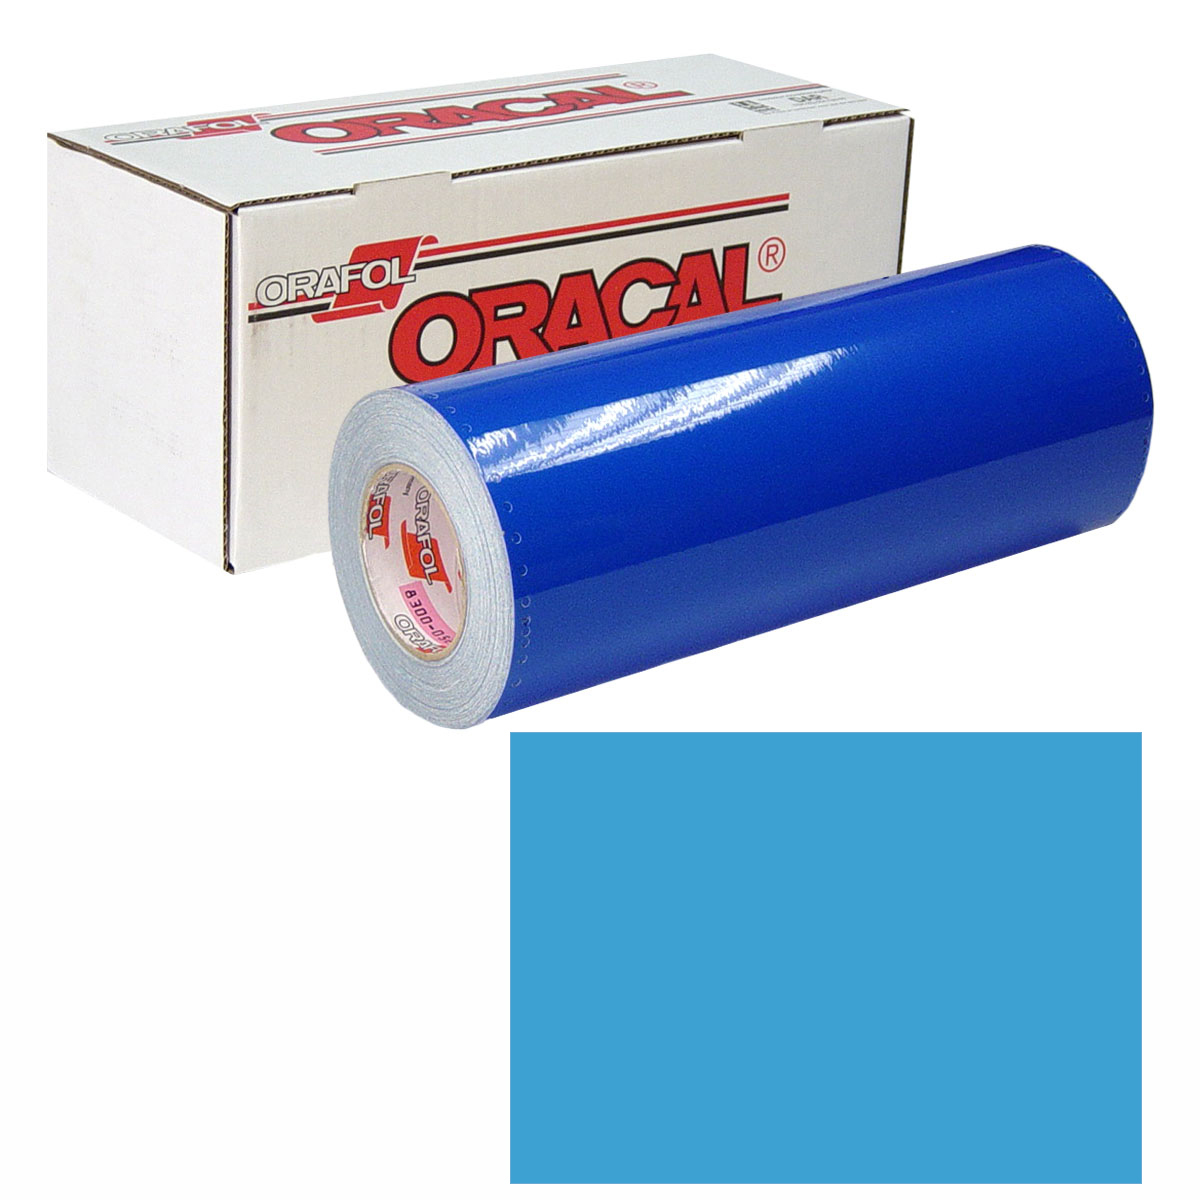 ORACAL 631 Unp 24In X 50Yd 056 Ice Blue